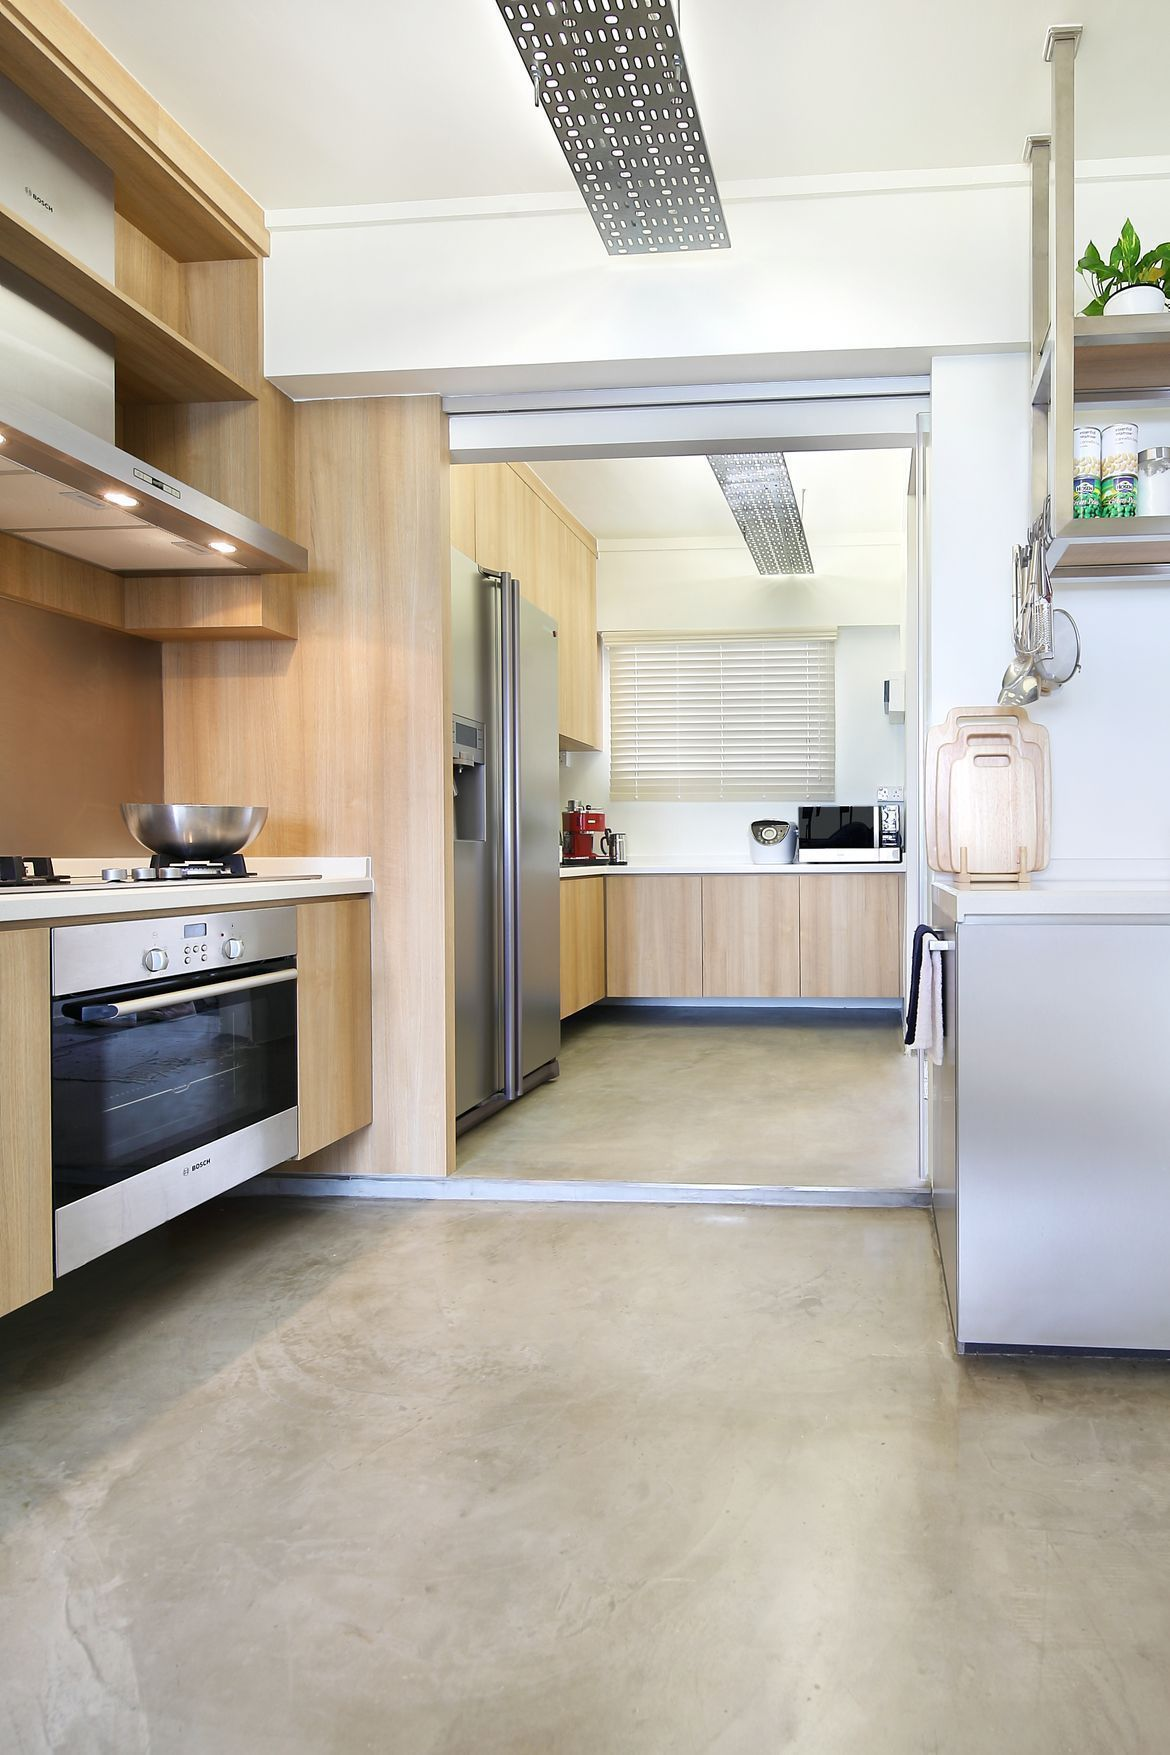 How To Make Your Kitchen Fully Functional And Cook Friendly